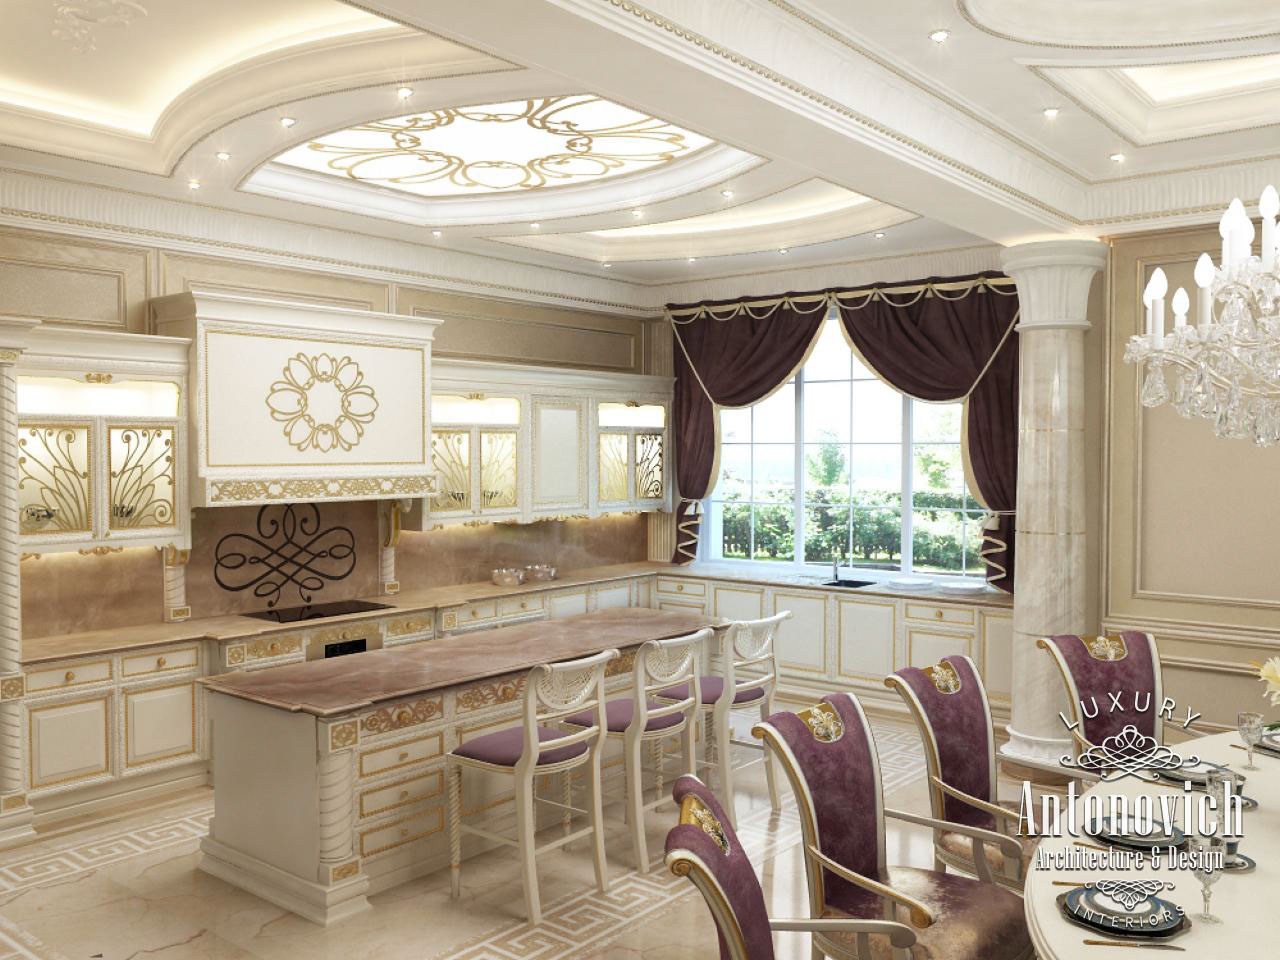 luxury kitchen interior design.  Kitchen Dubai From Luxury Antonovich Design On Behance